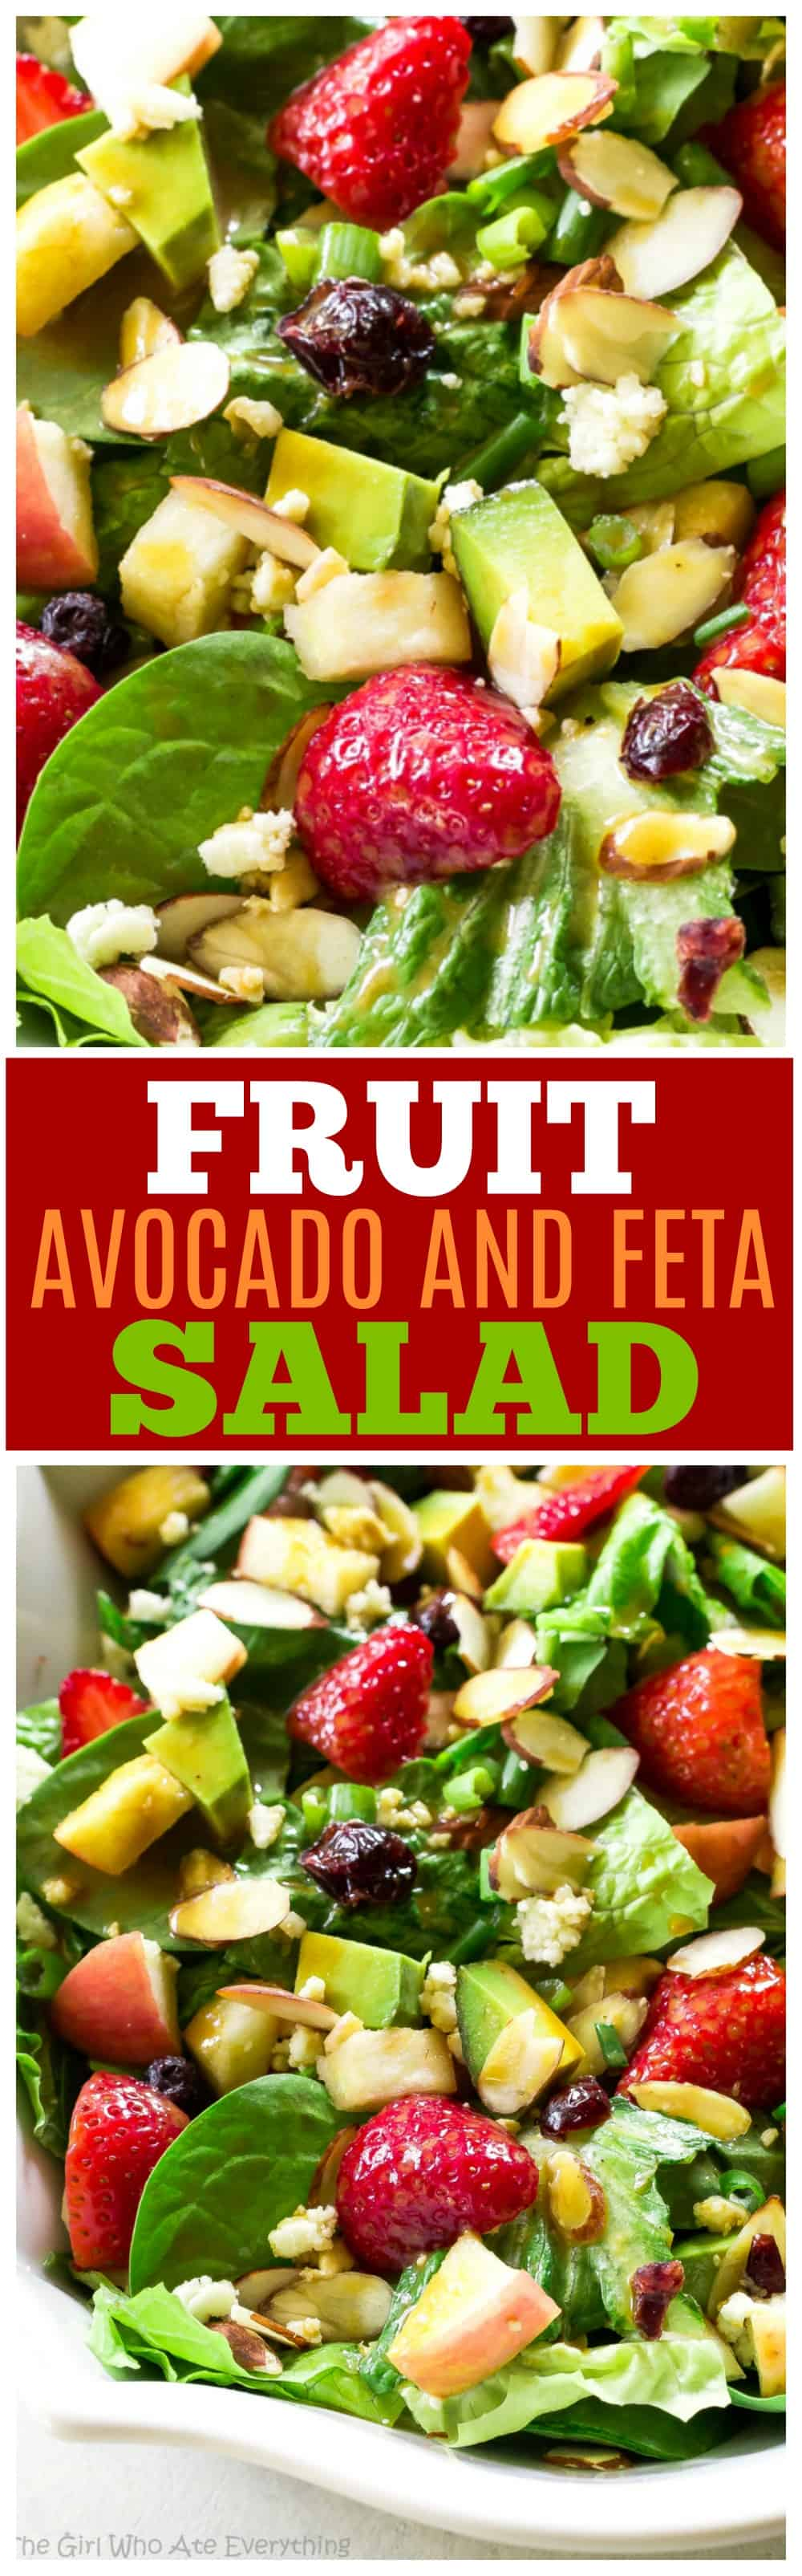 Fruit, Avocado, and Feta Salad in a bowl